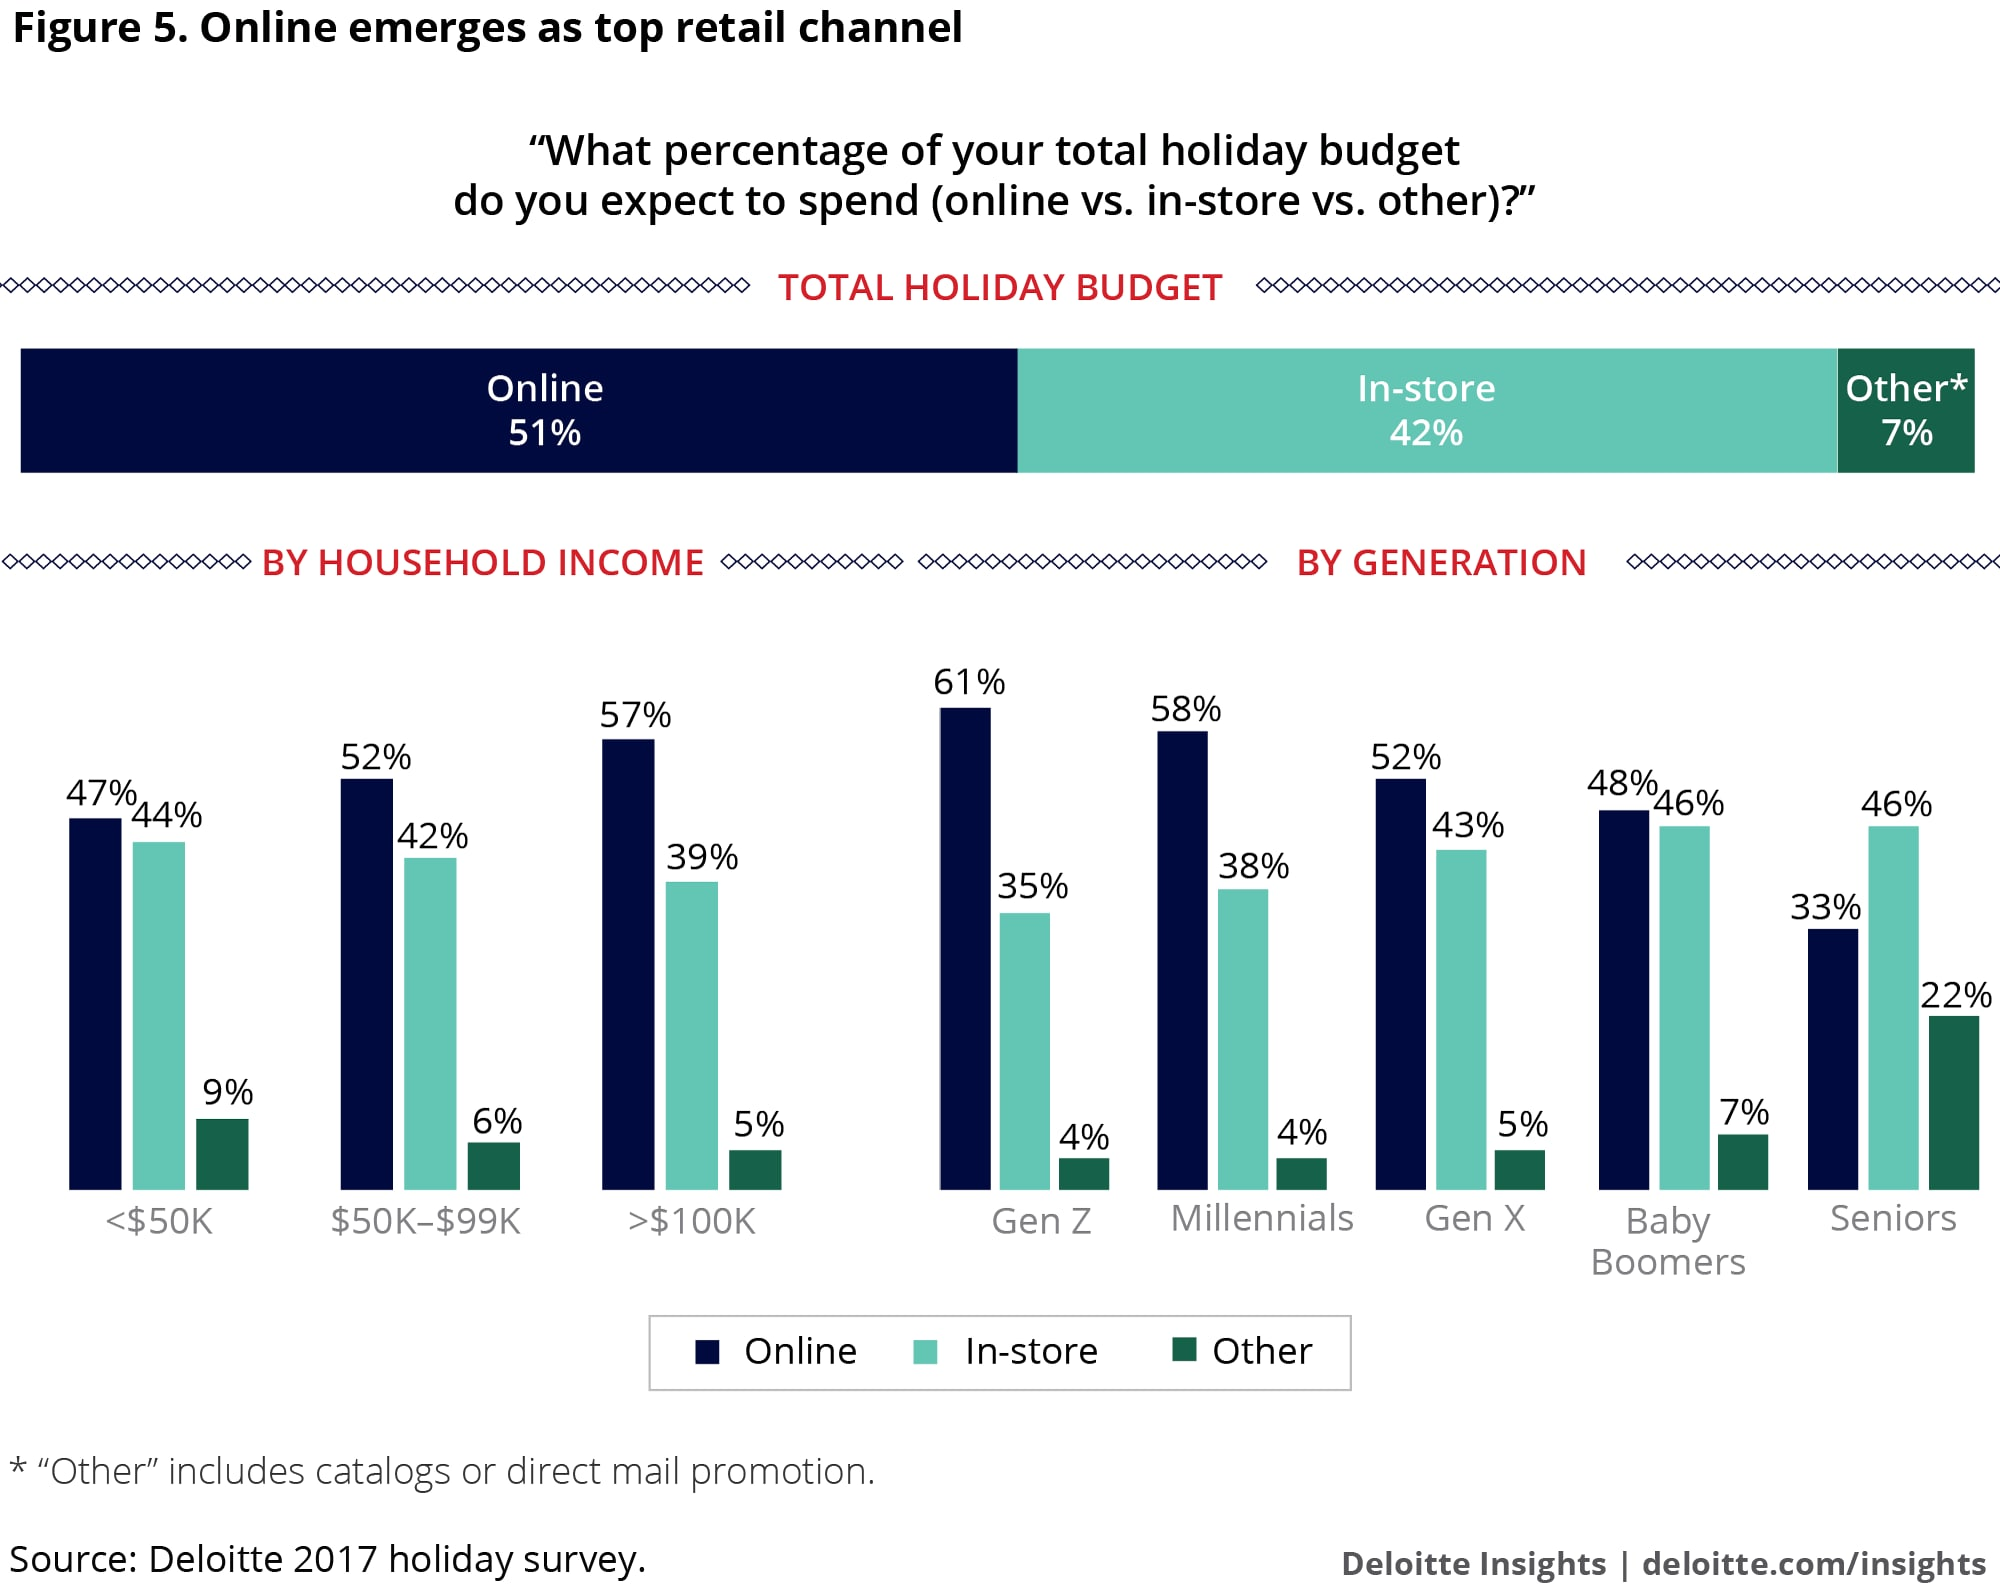 Online emerges as top retail channel